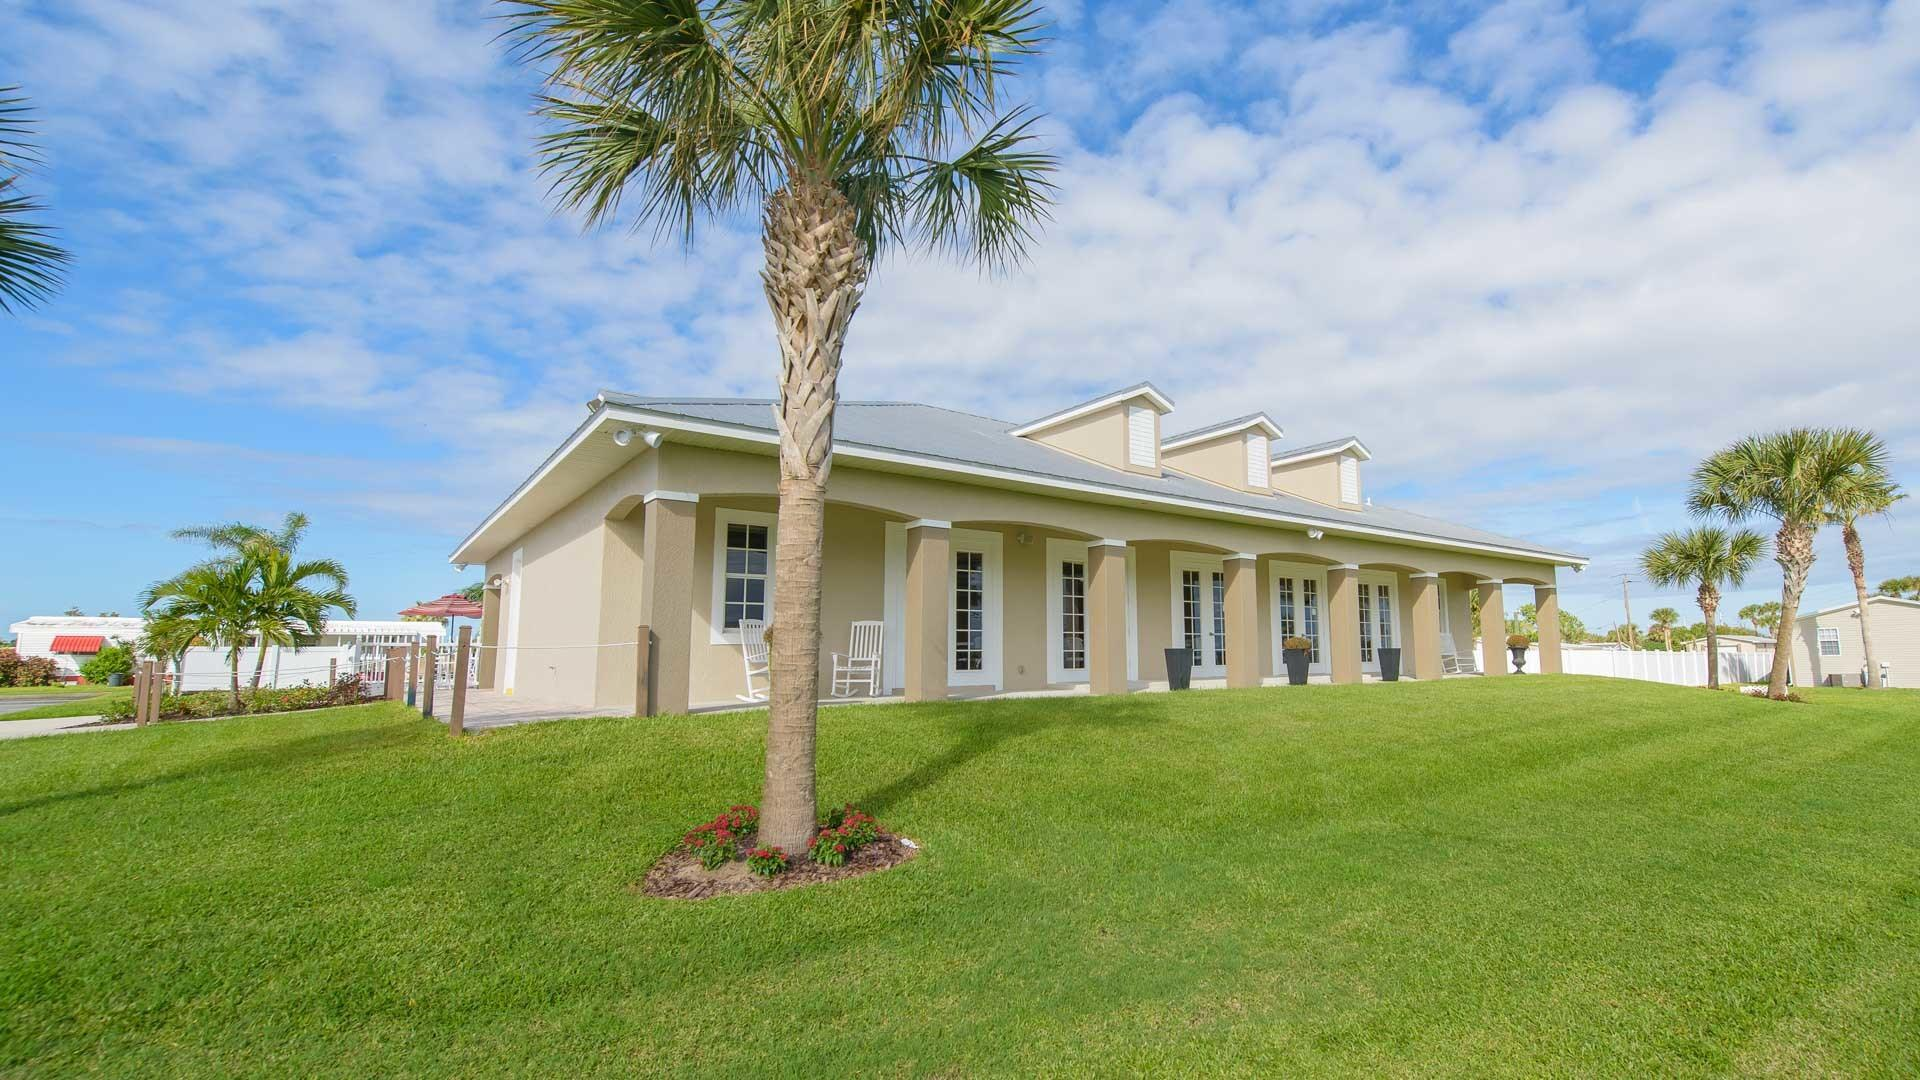 Pelican Bay 55+ Manufactured Homes Community Clubhouse in Micco, FL